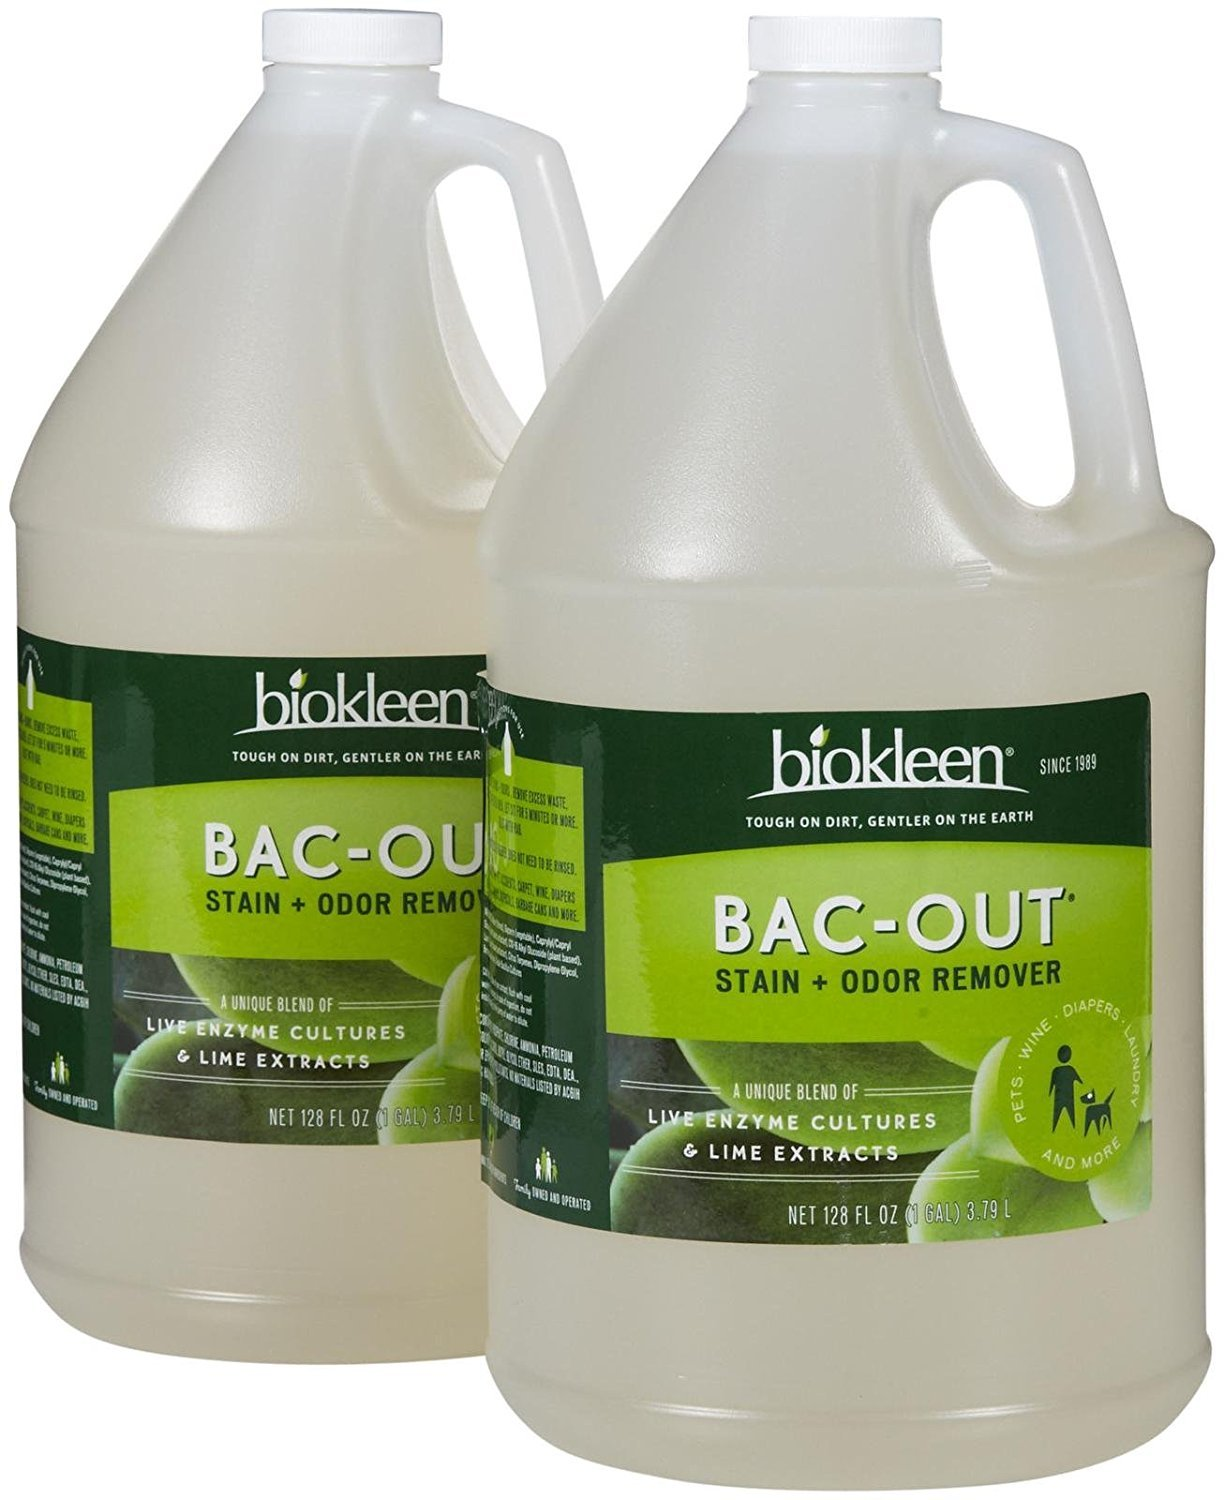 Biokleen Bac Out Stain Odor Remover Foam Spray Destroys